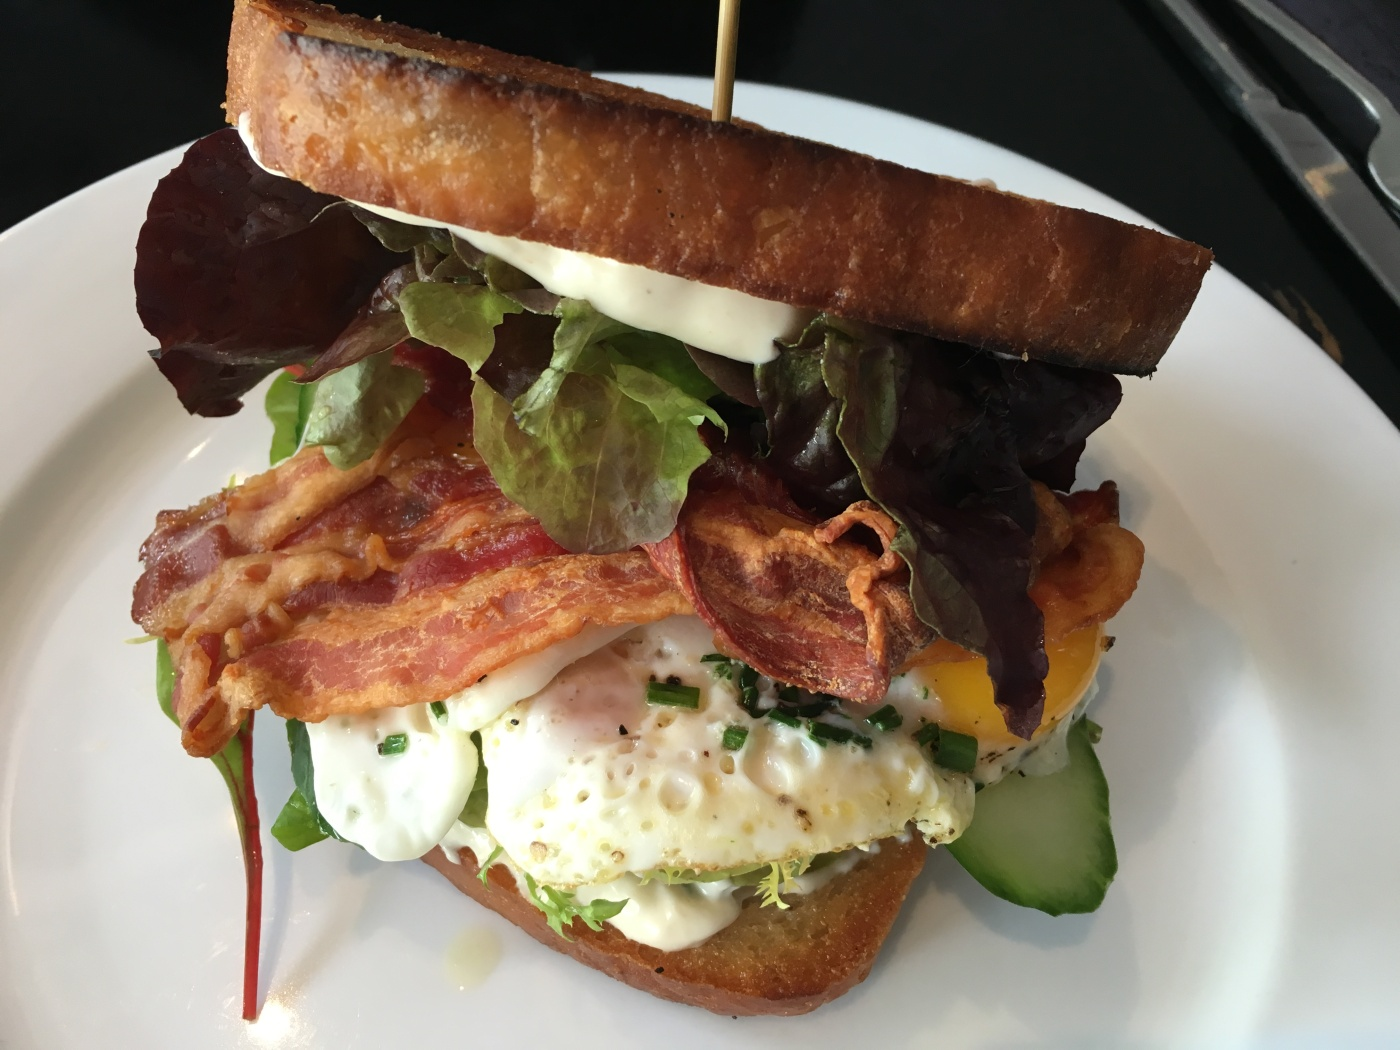 So That's Where All the Bacon Went - A Massive BLT and Fried Egg Sandwich at Bodega in Copenhagen, Denmark